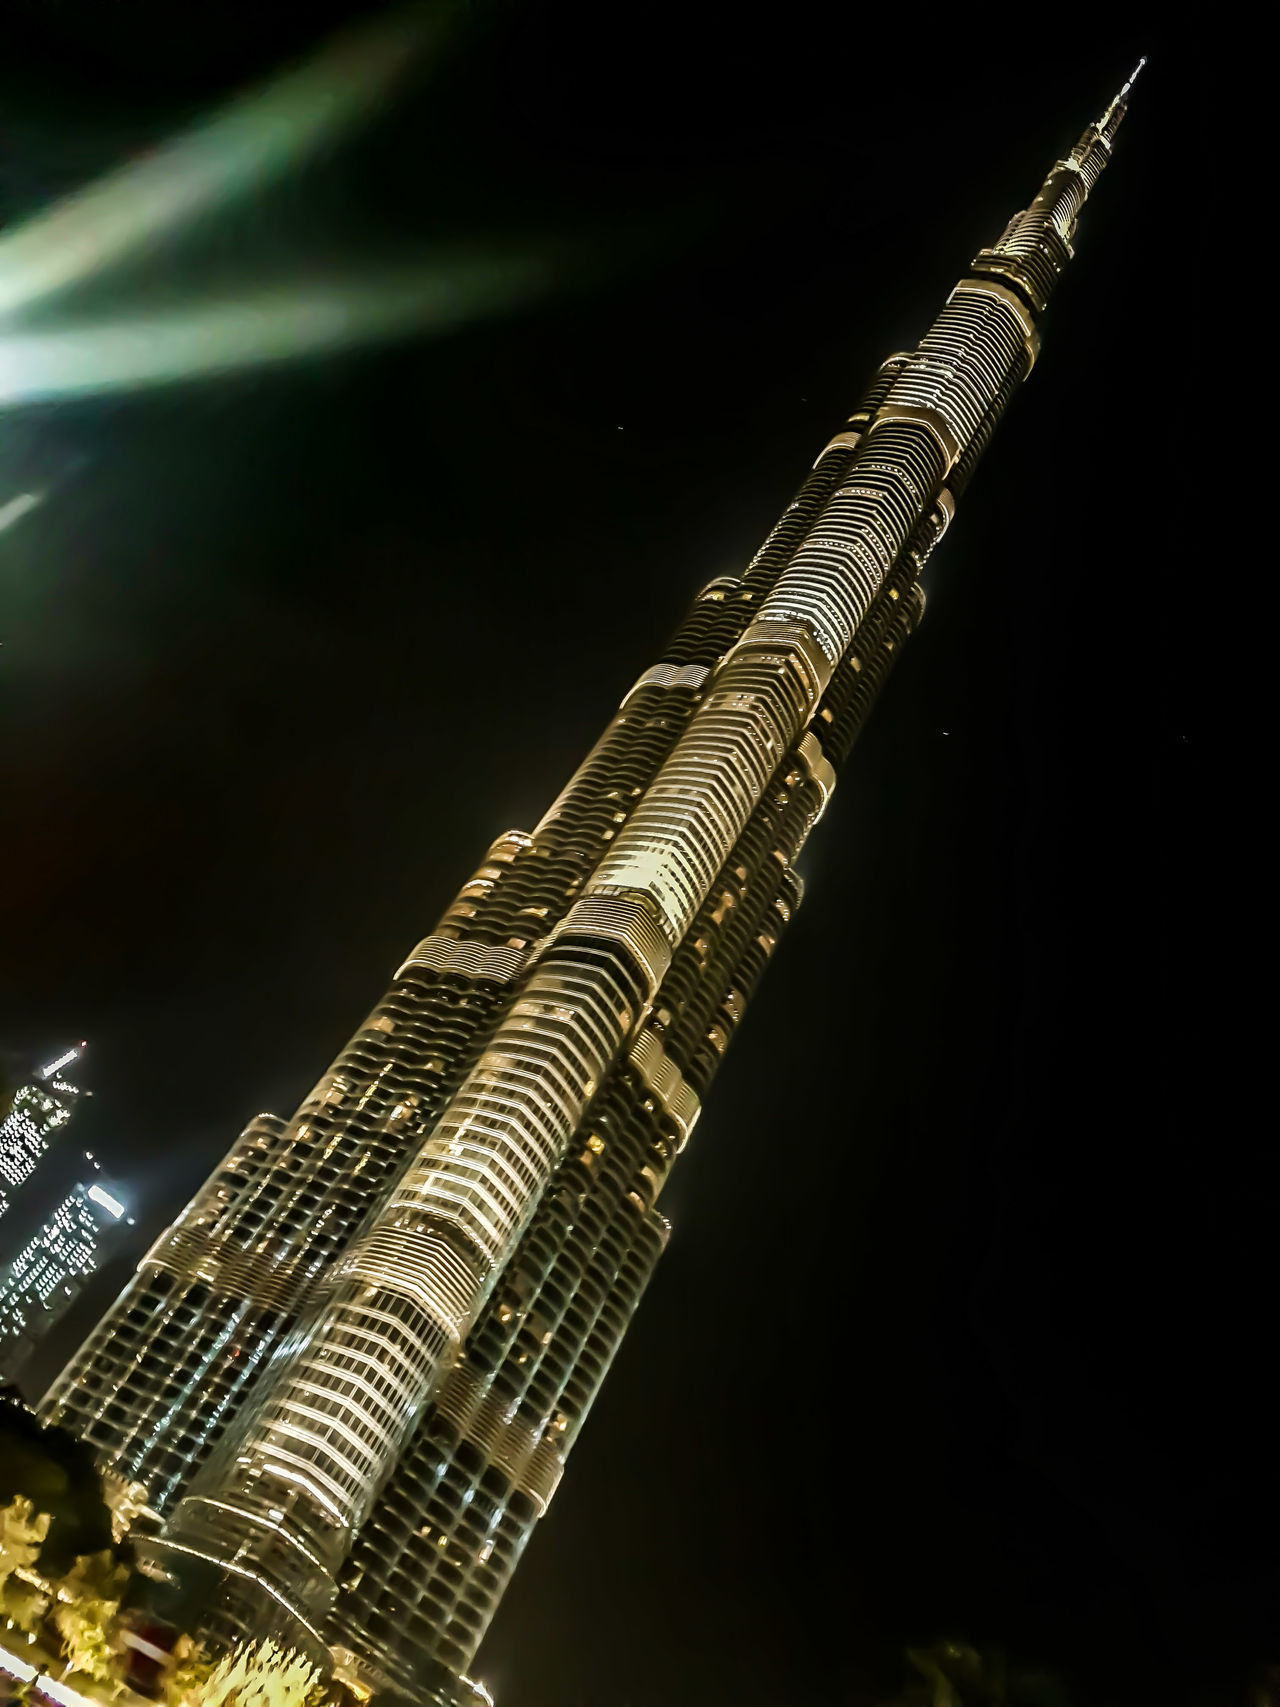 Night City Sky Architecture No People Illuminated Outdoors UAE , Dubai Burj Khalifa Burjkhaleefa ,downtown Dubai. Burjkalifa Travel Destinations Burjkhalifaview Burj Khalifa, Dubai Close-up Modern UAE Worldstallestbuilding Dubai Dubai Burj Khalifa Dubaidowntown Downtown Dubai Dubai Downtown